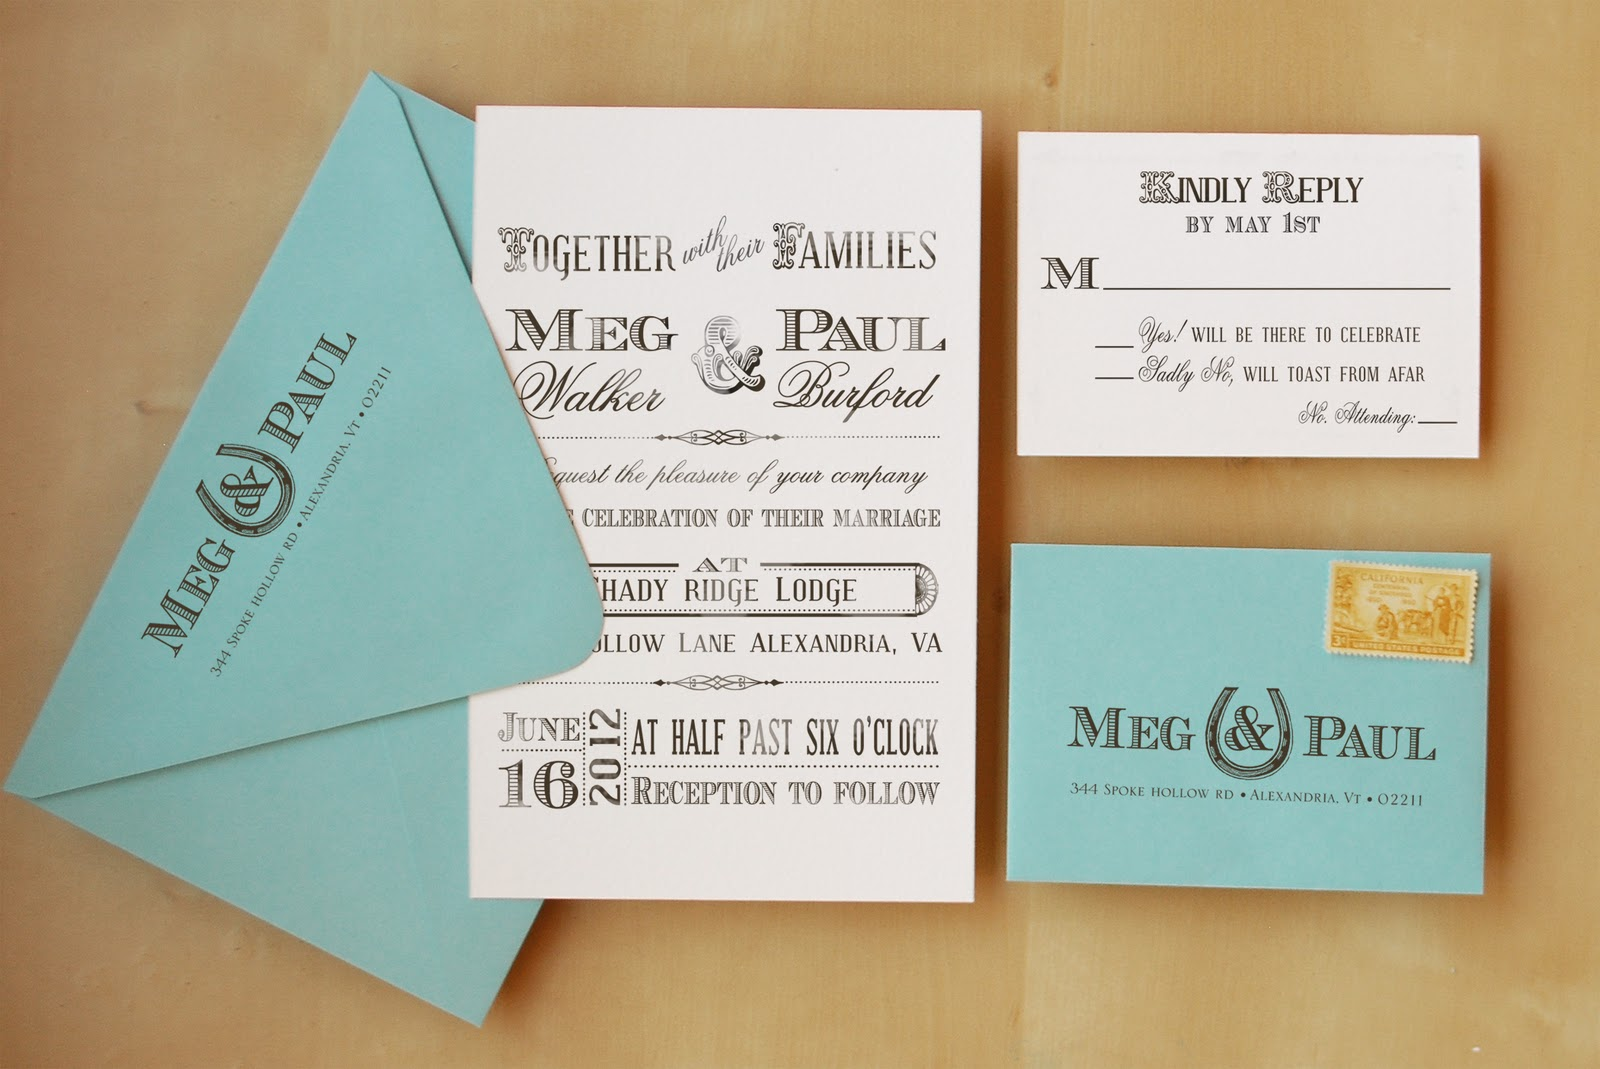 Antiquaria: Introducing Wedding Invitation Rubber Stamps!